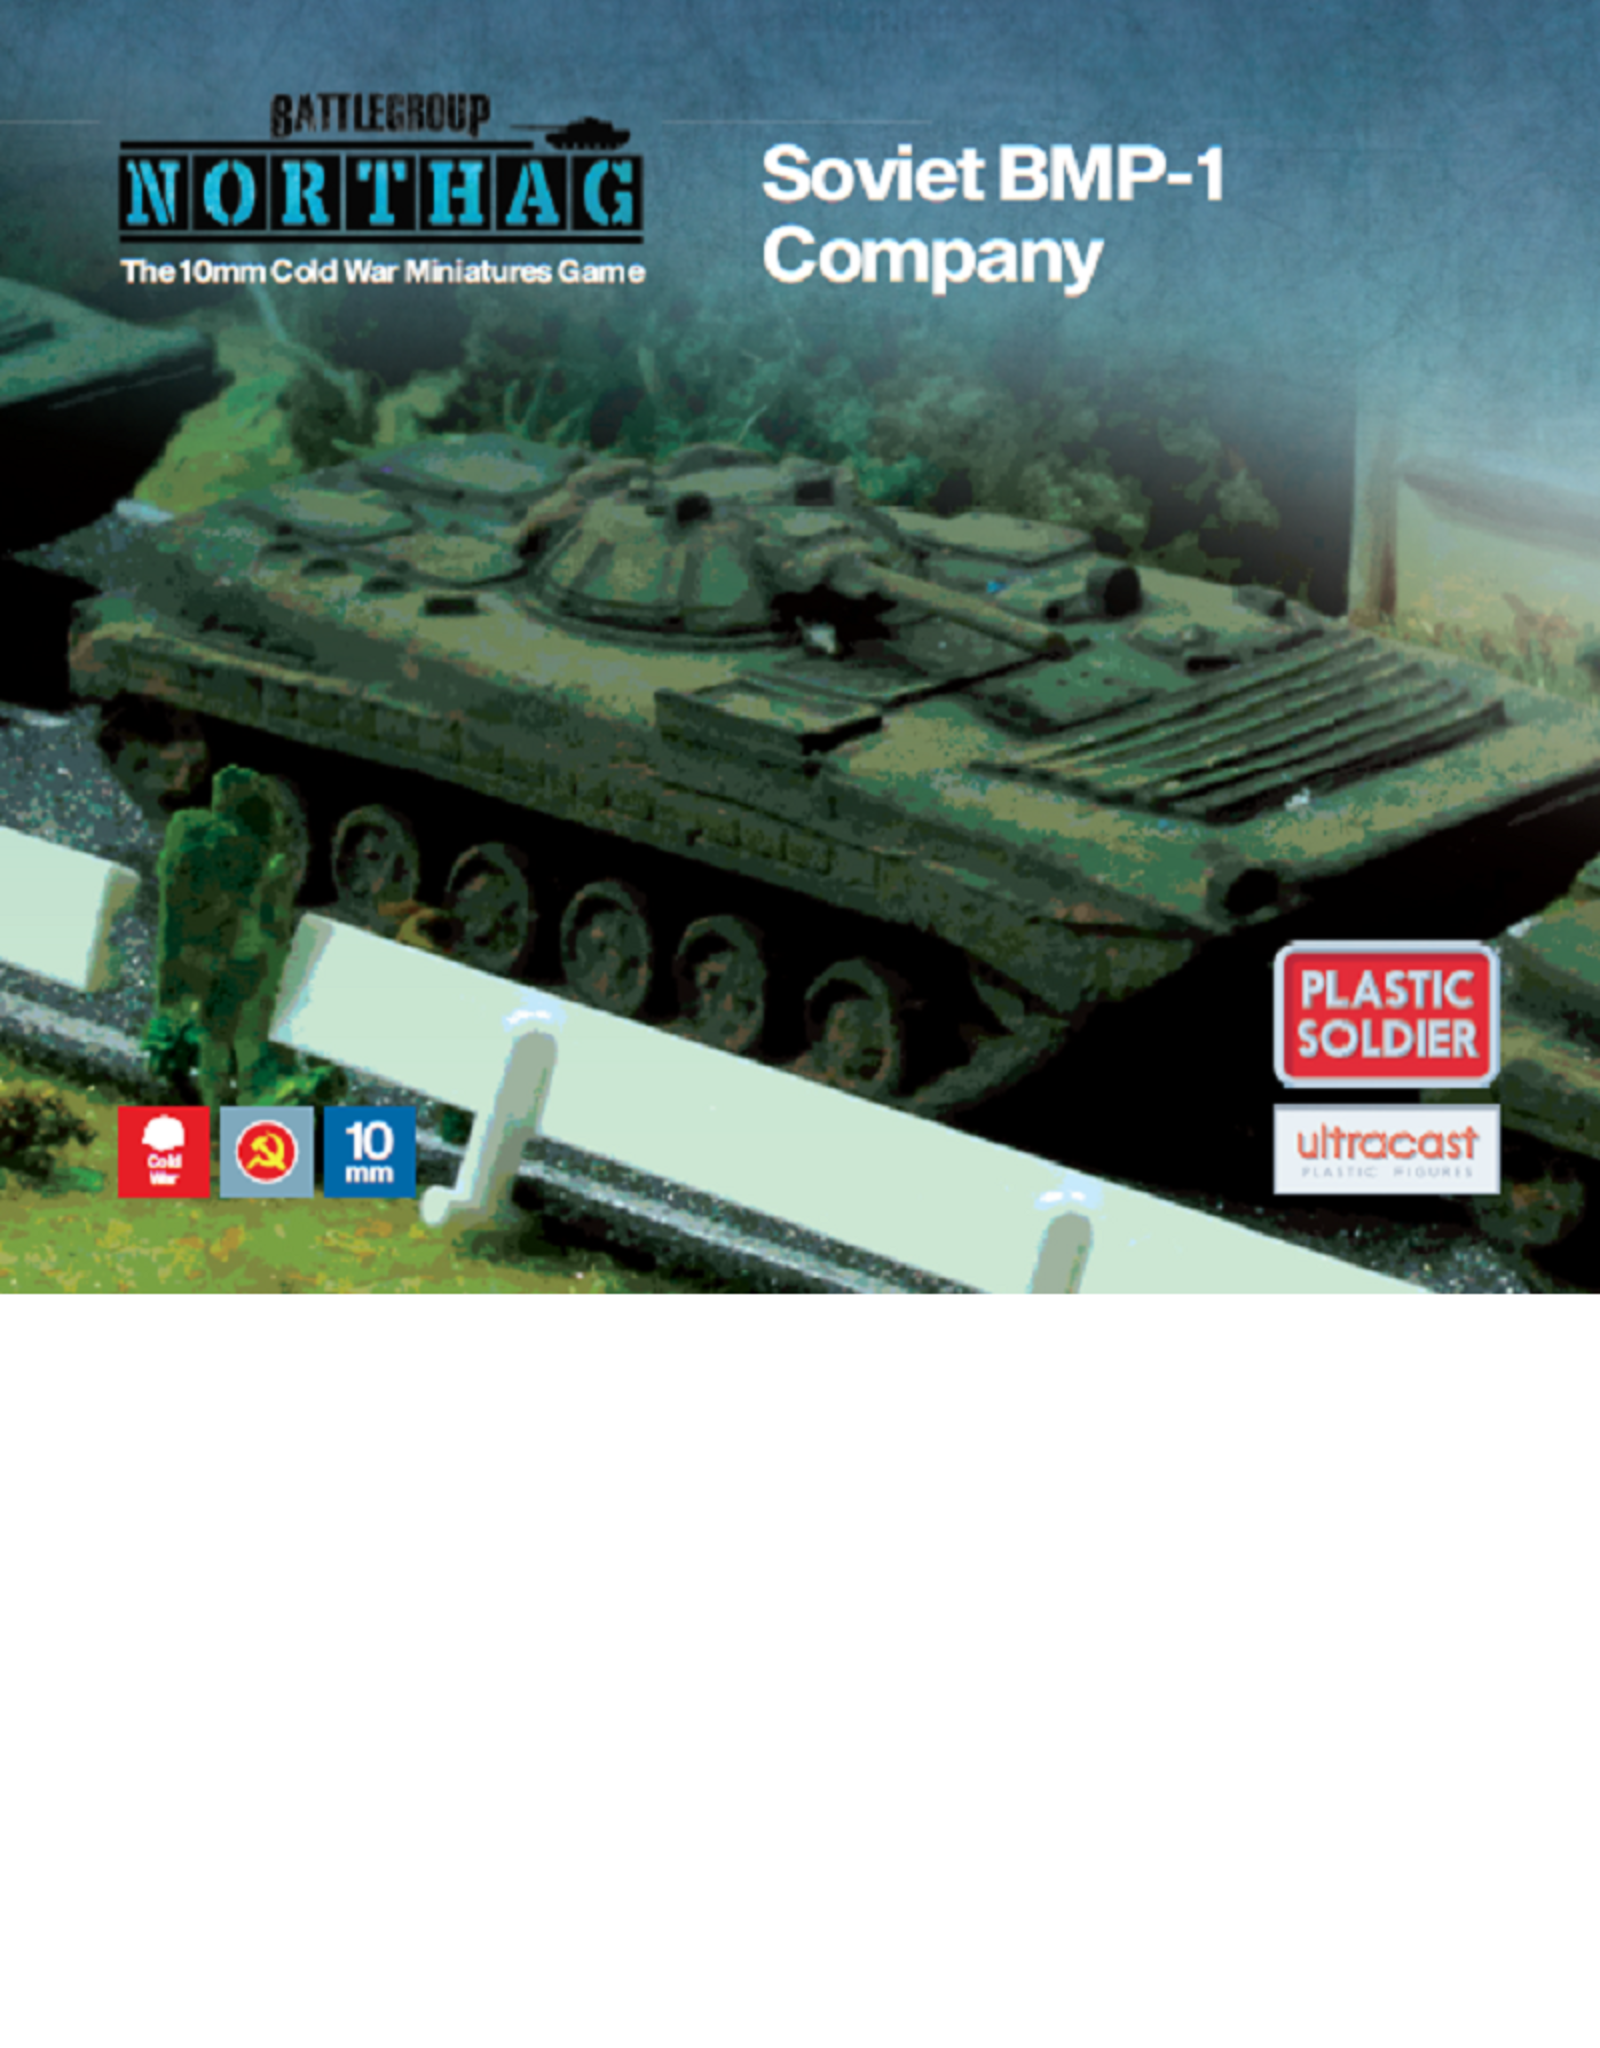 Plastic Soldier Company Soviet BMP-1 Company